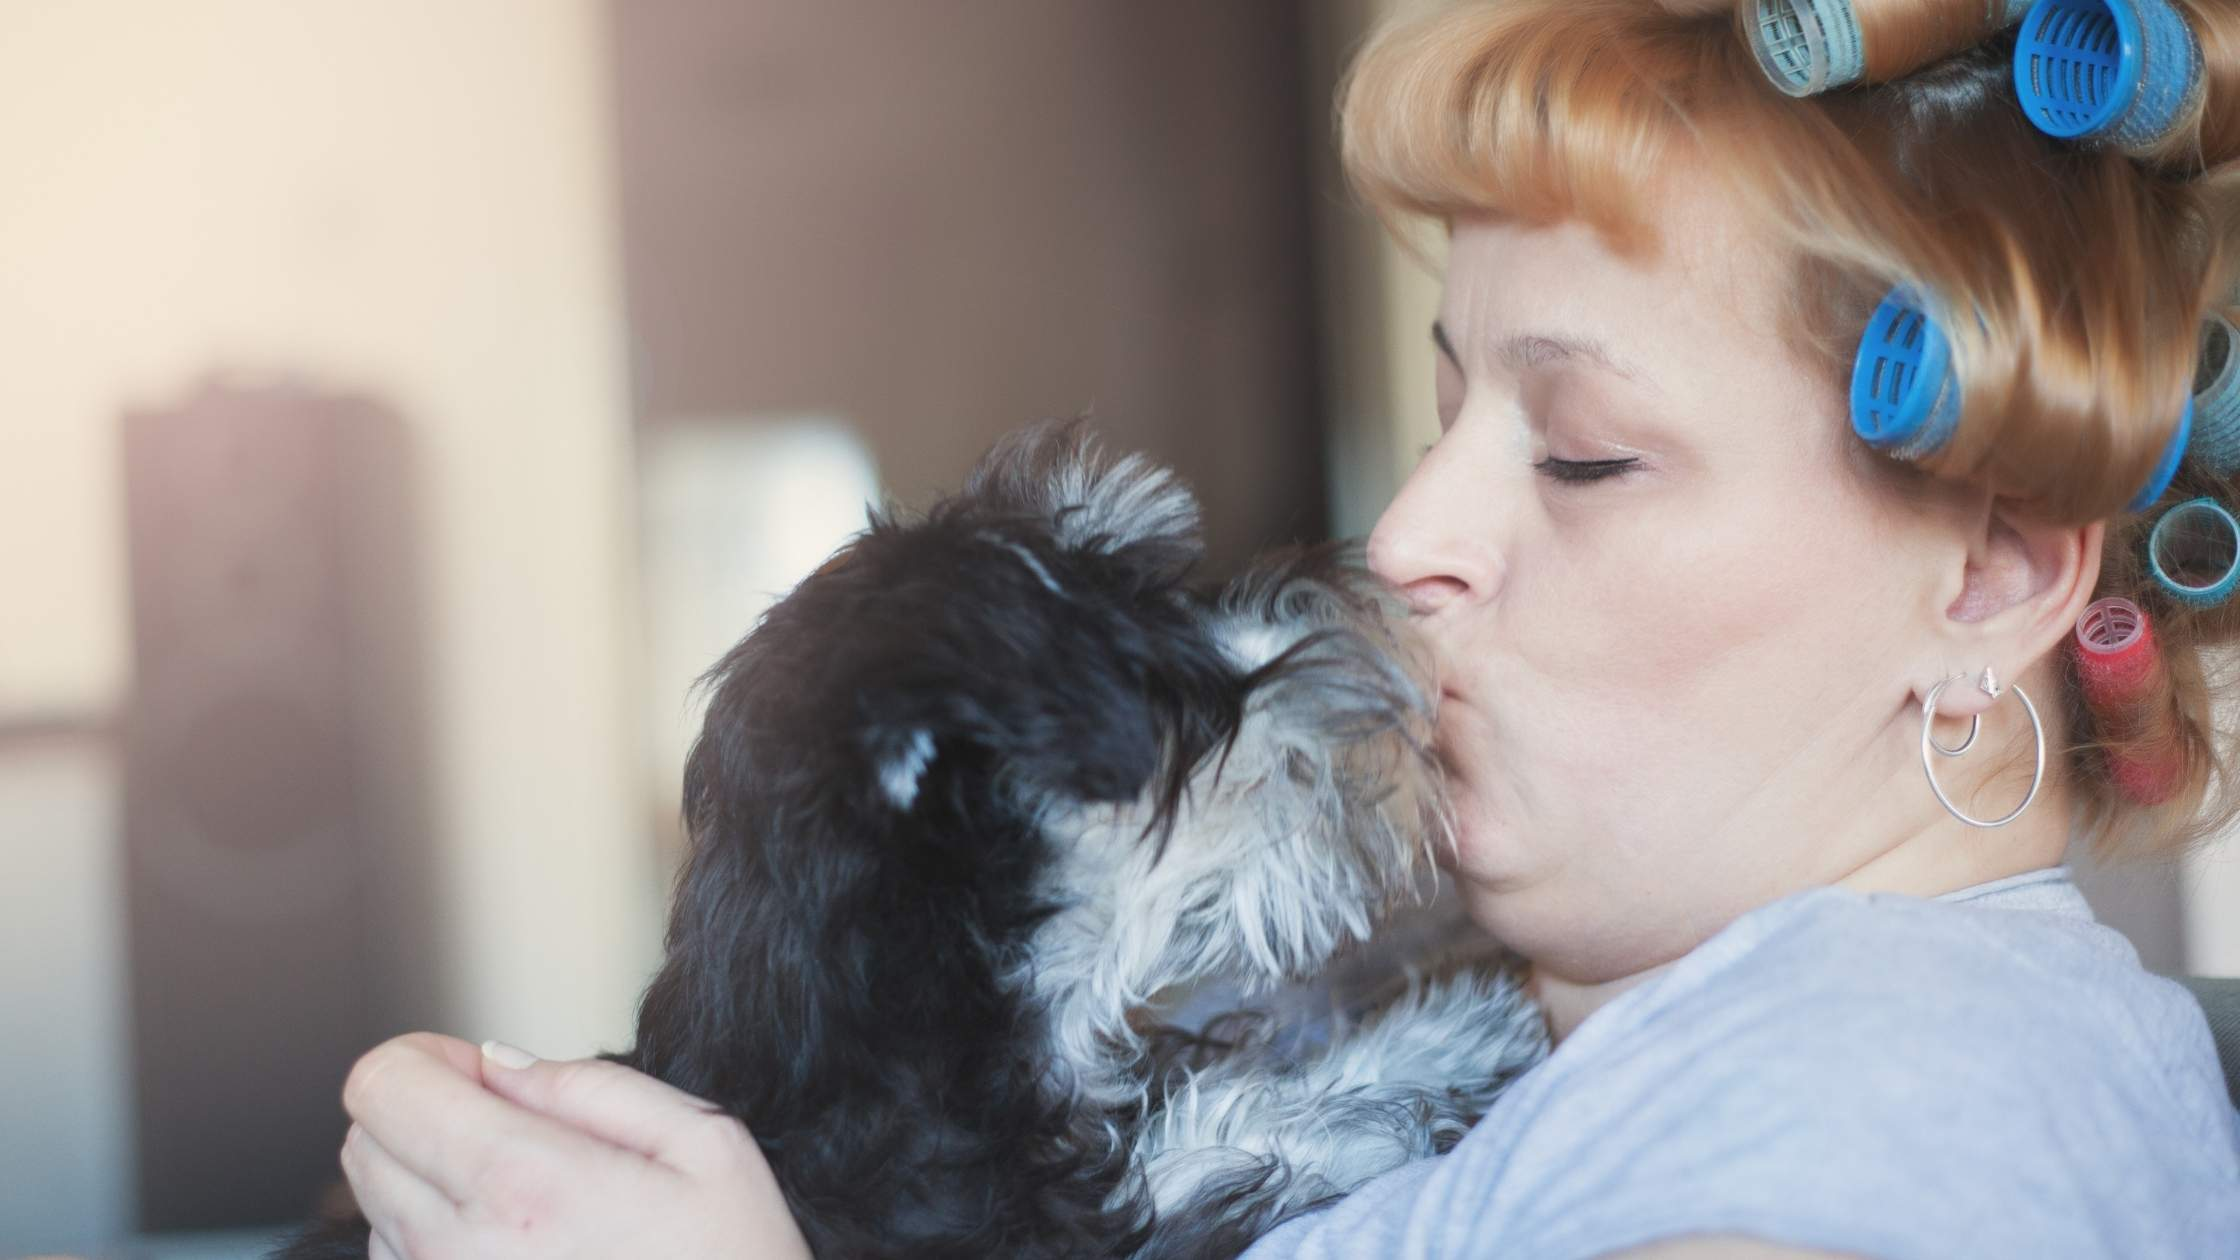 Middle aged woman with blue curlers in her hair plants a kiss on her little black dog's head